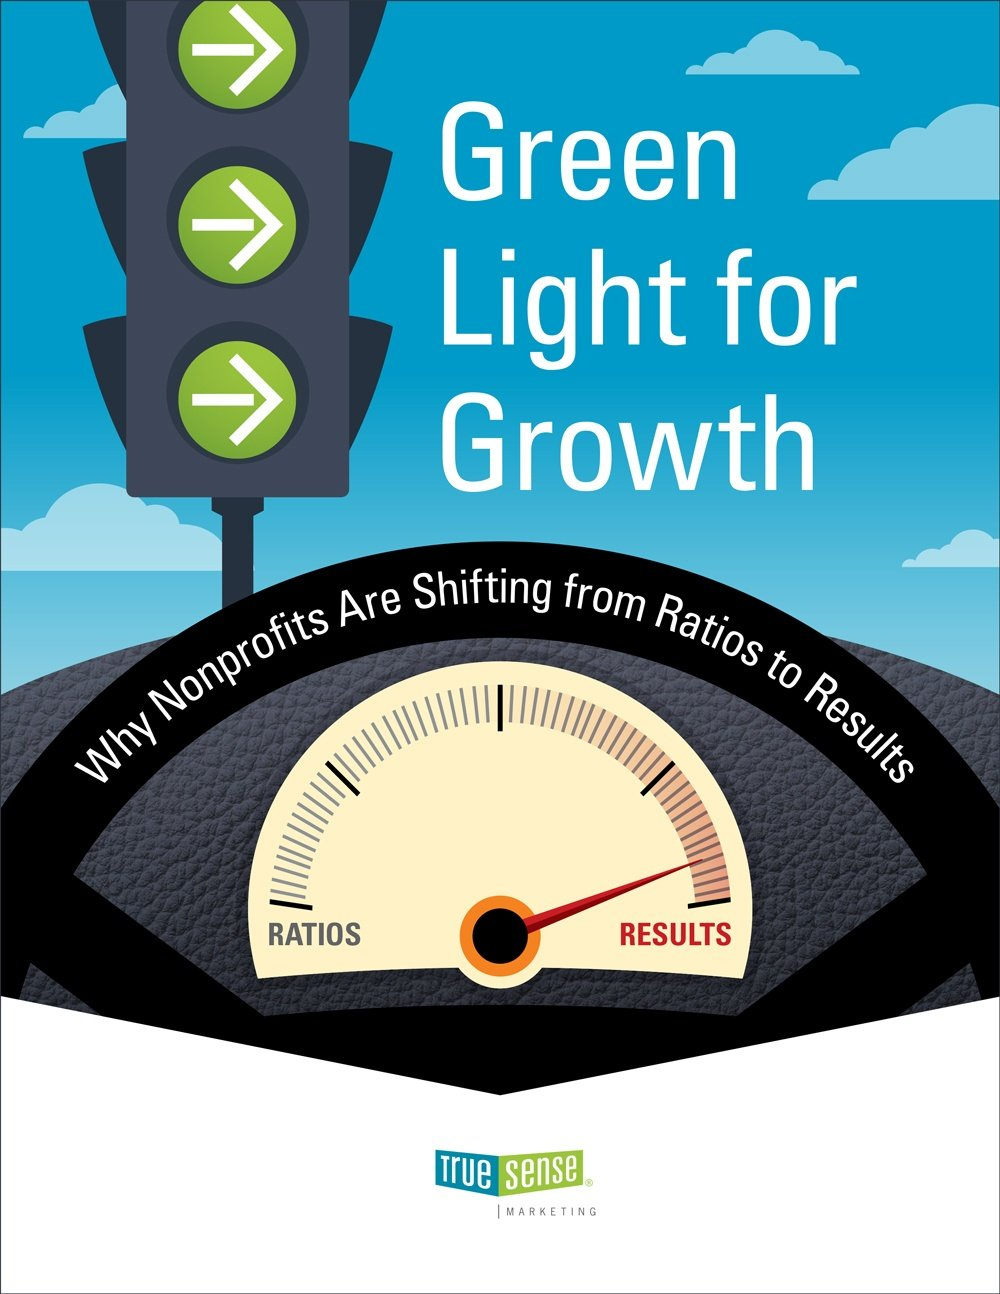 Green-Light-for-Growth-cost-ratios